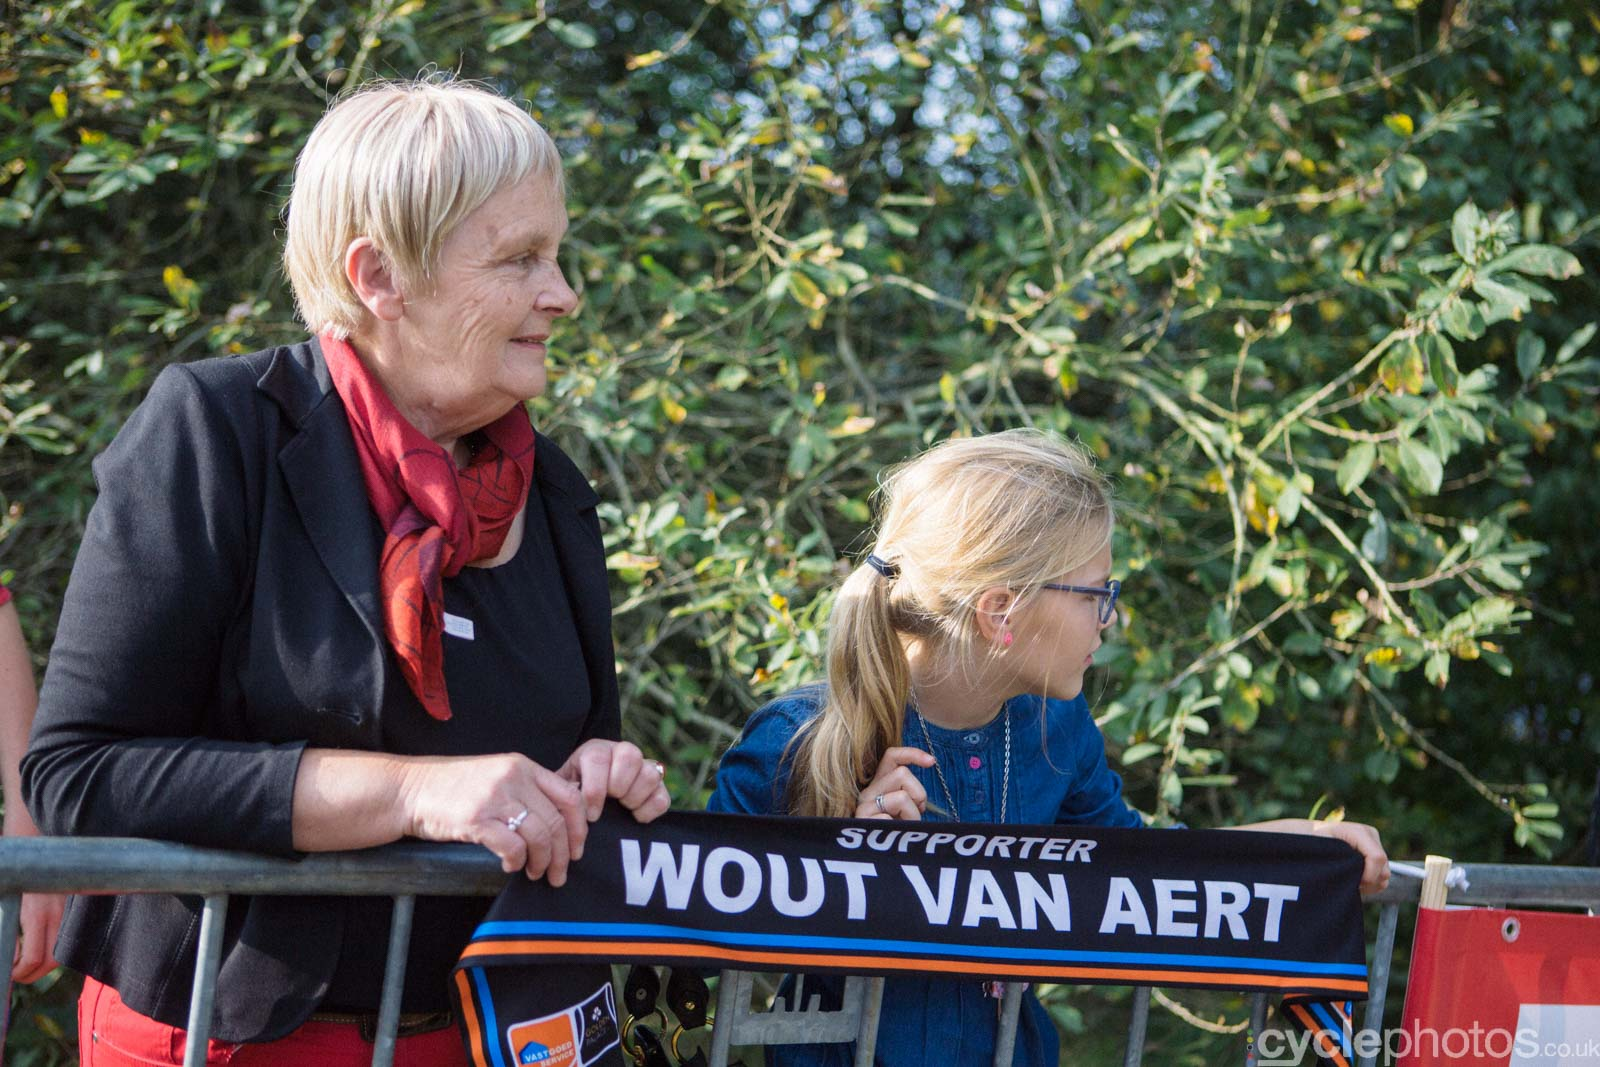 Wout Van Aert supporters wait for their favourite rider.